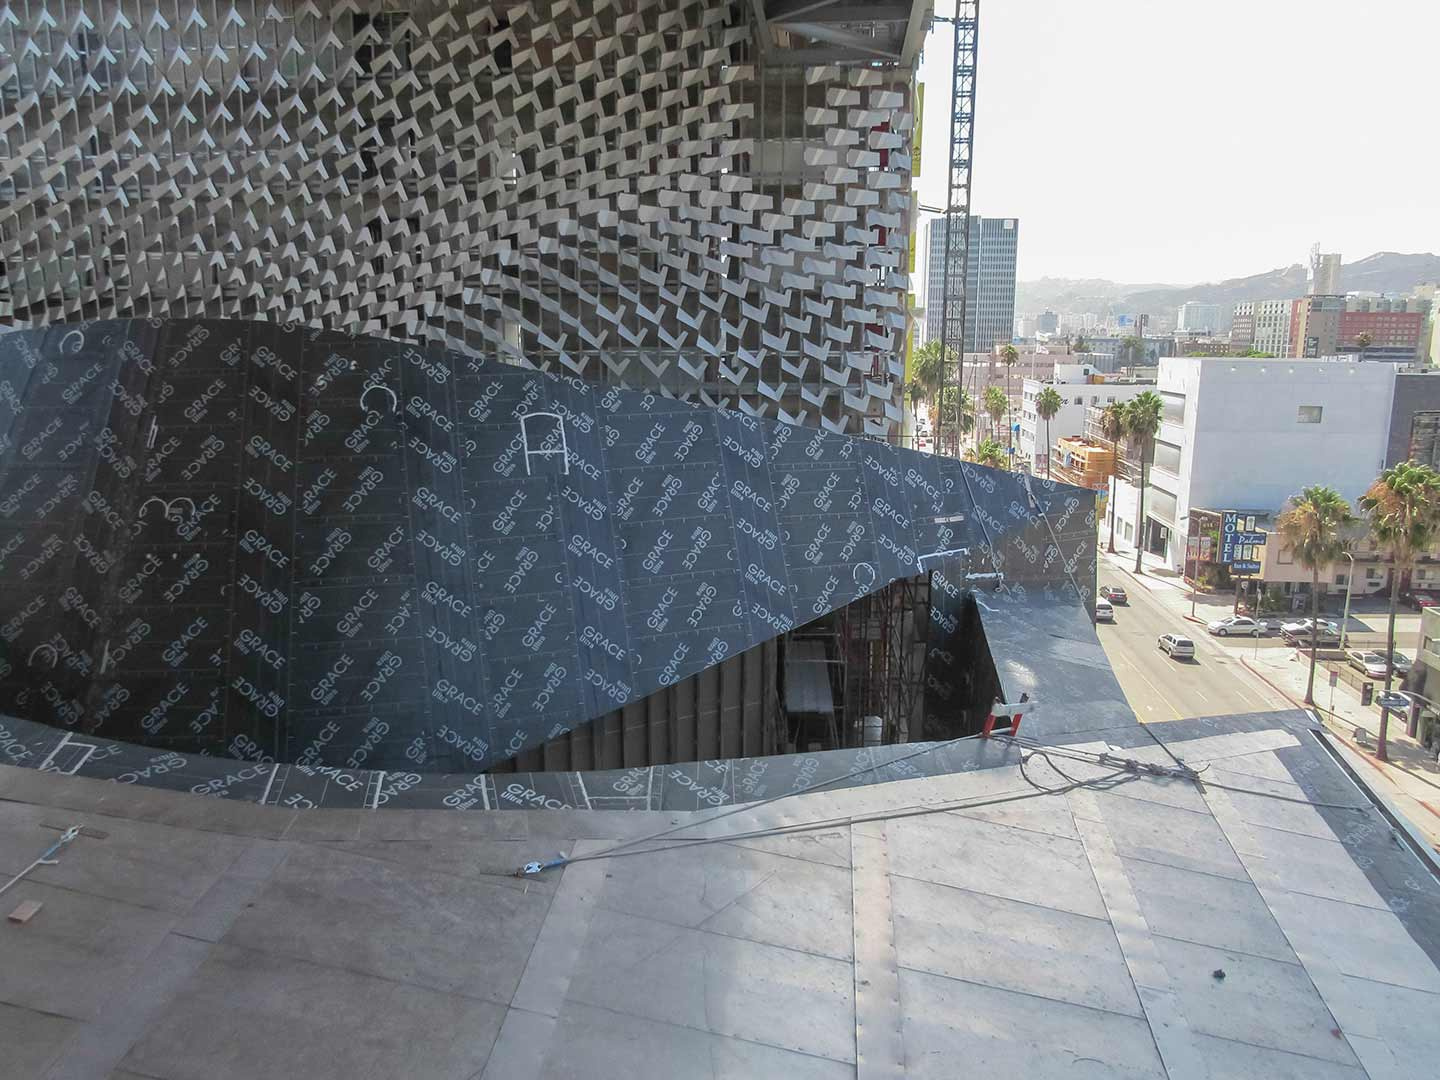 Photograph showing both the ZEPPS forms as well as the generative facade design.